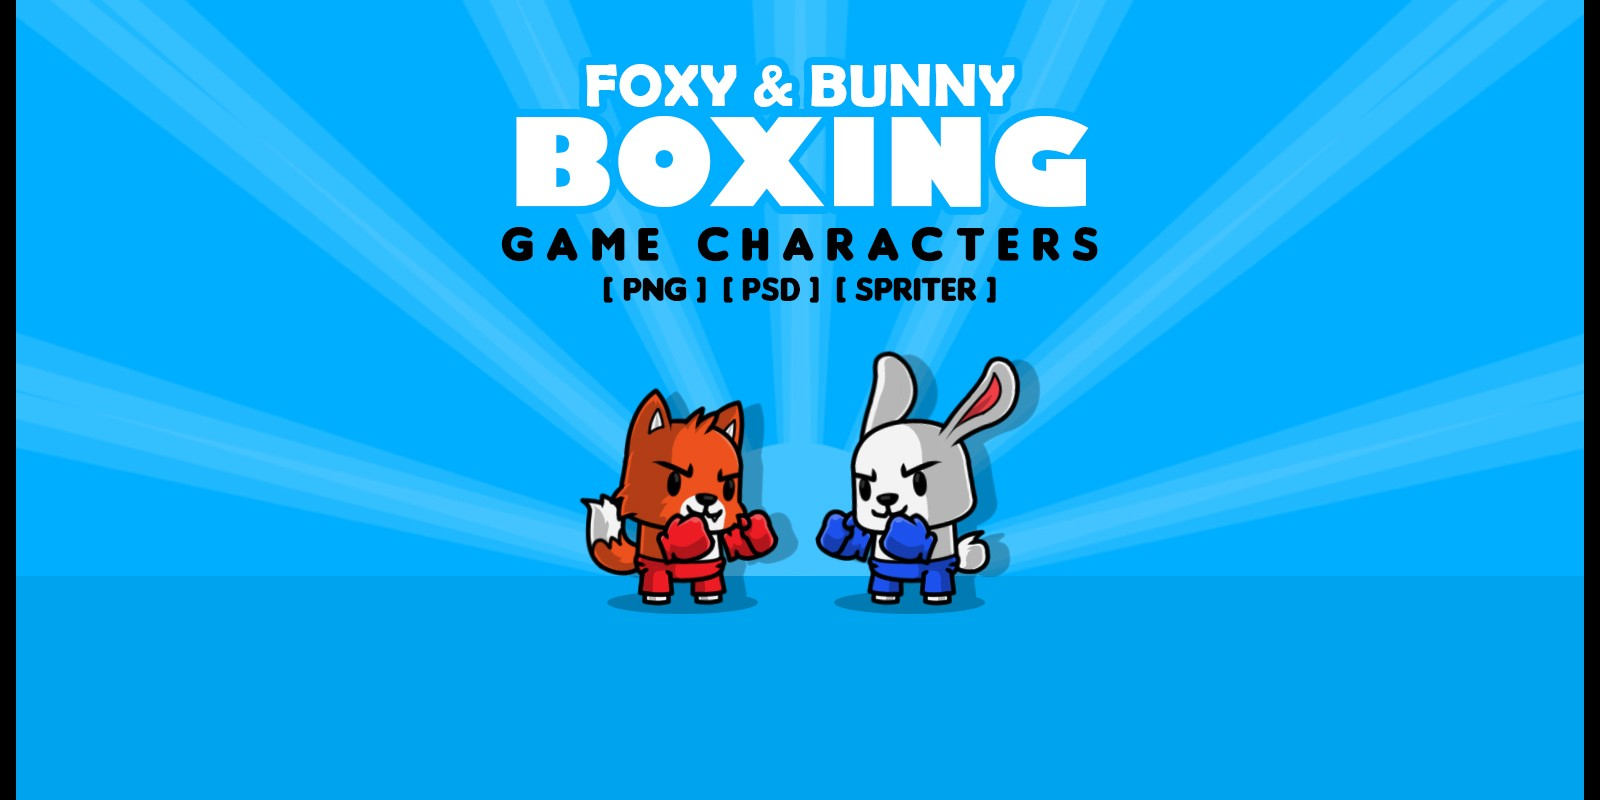 Foxy & Bunny - Game Characters